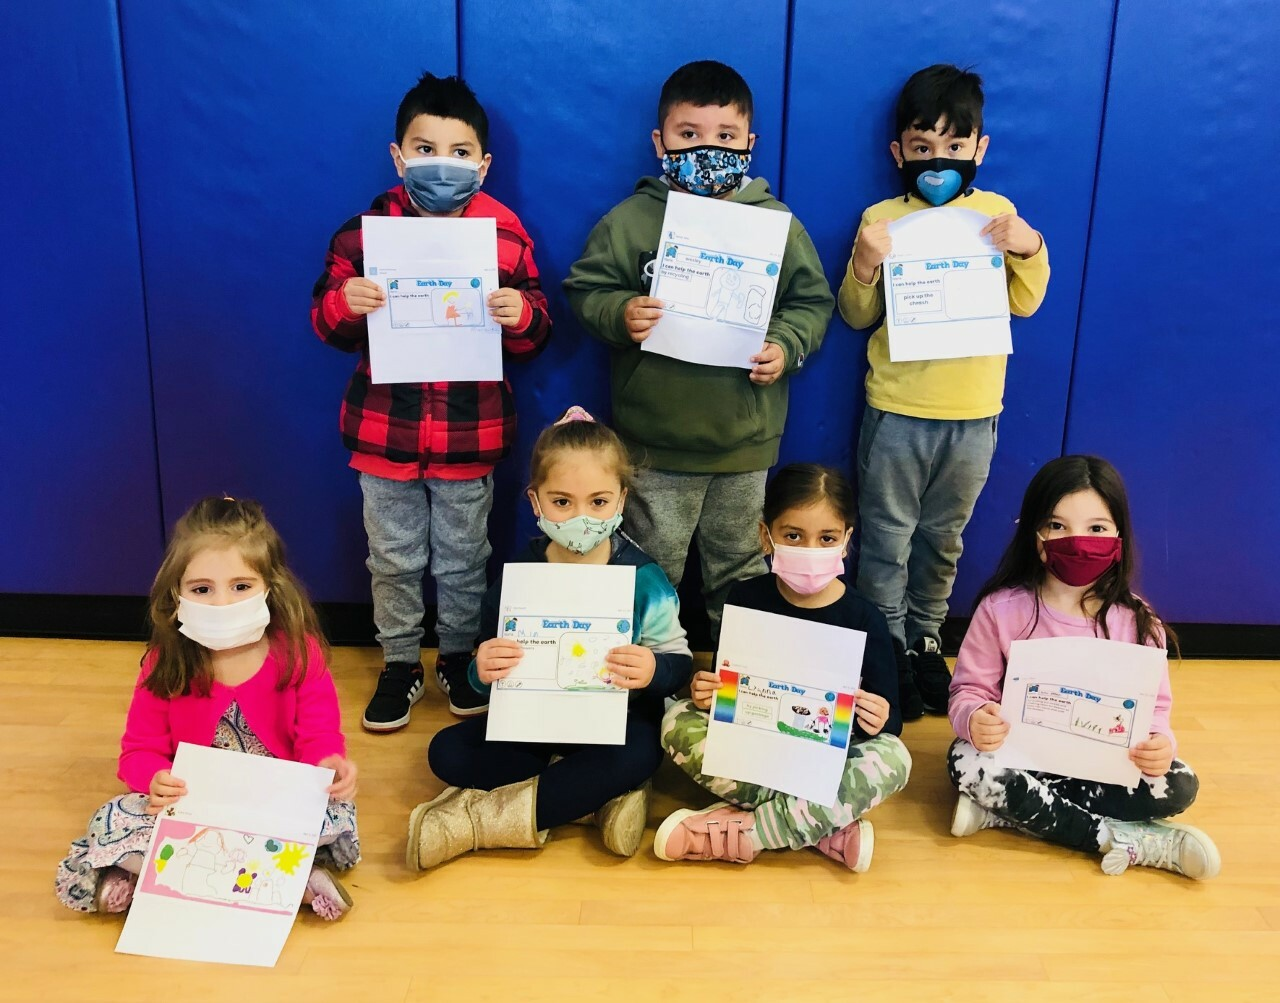 Kindergarteners Andre Chavez, Lyanna Cruz, Evey Kirst, Lulu Liffen, James Reinoso Salazar, Mia Rispoli and Wesley Velez won the Earth Day writing contest for their grade.